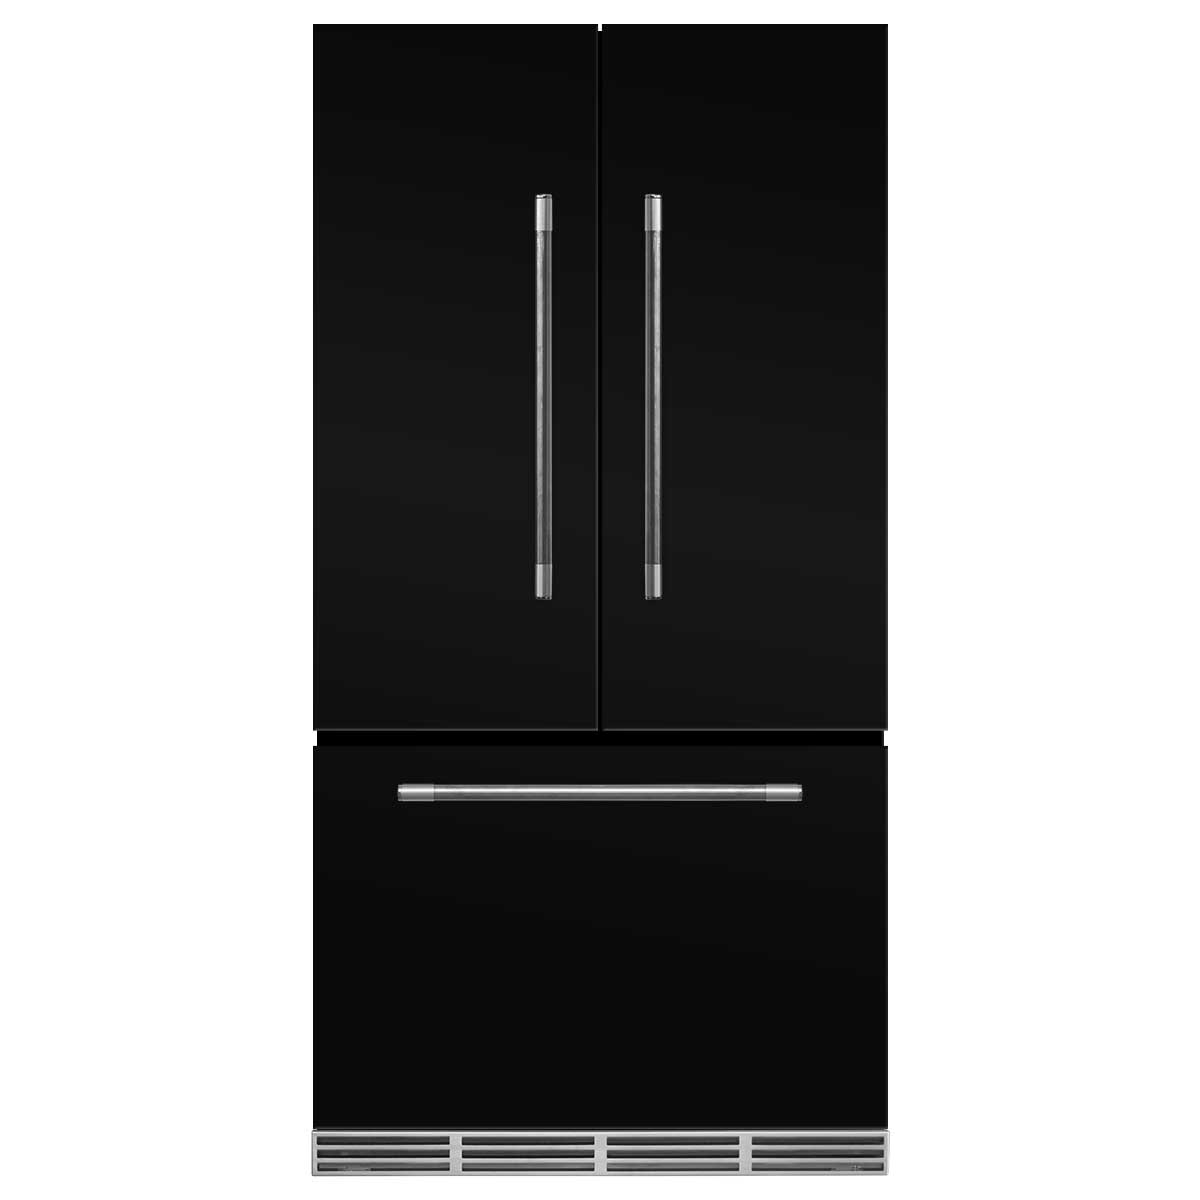 Marvel Mercury French Door Counter-Depth Refrigerator- Marvel Mercury French Door Refrigerator Stainless Steel